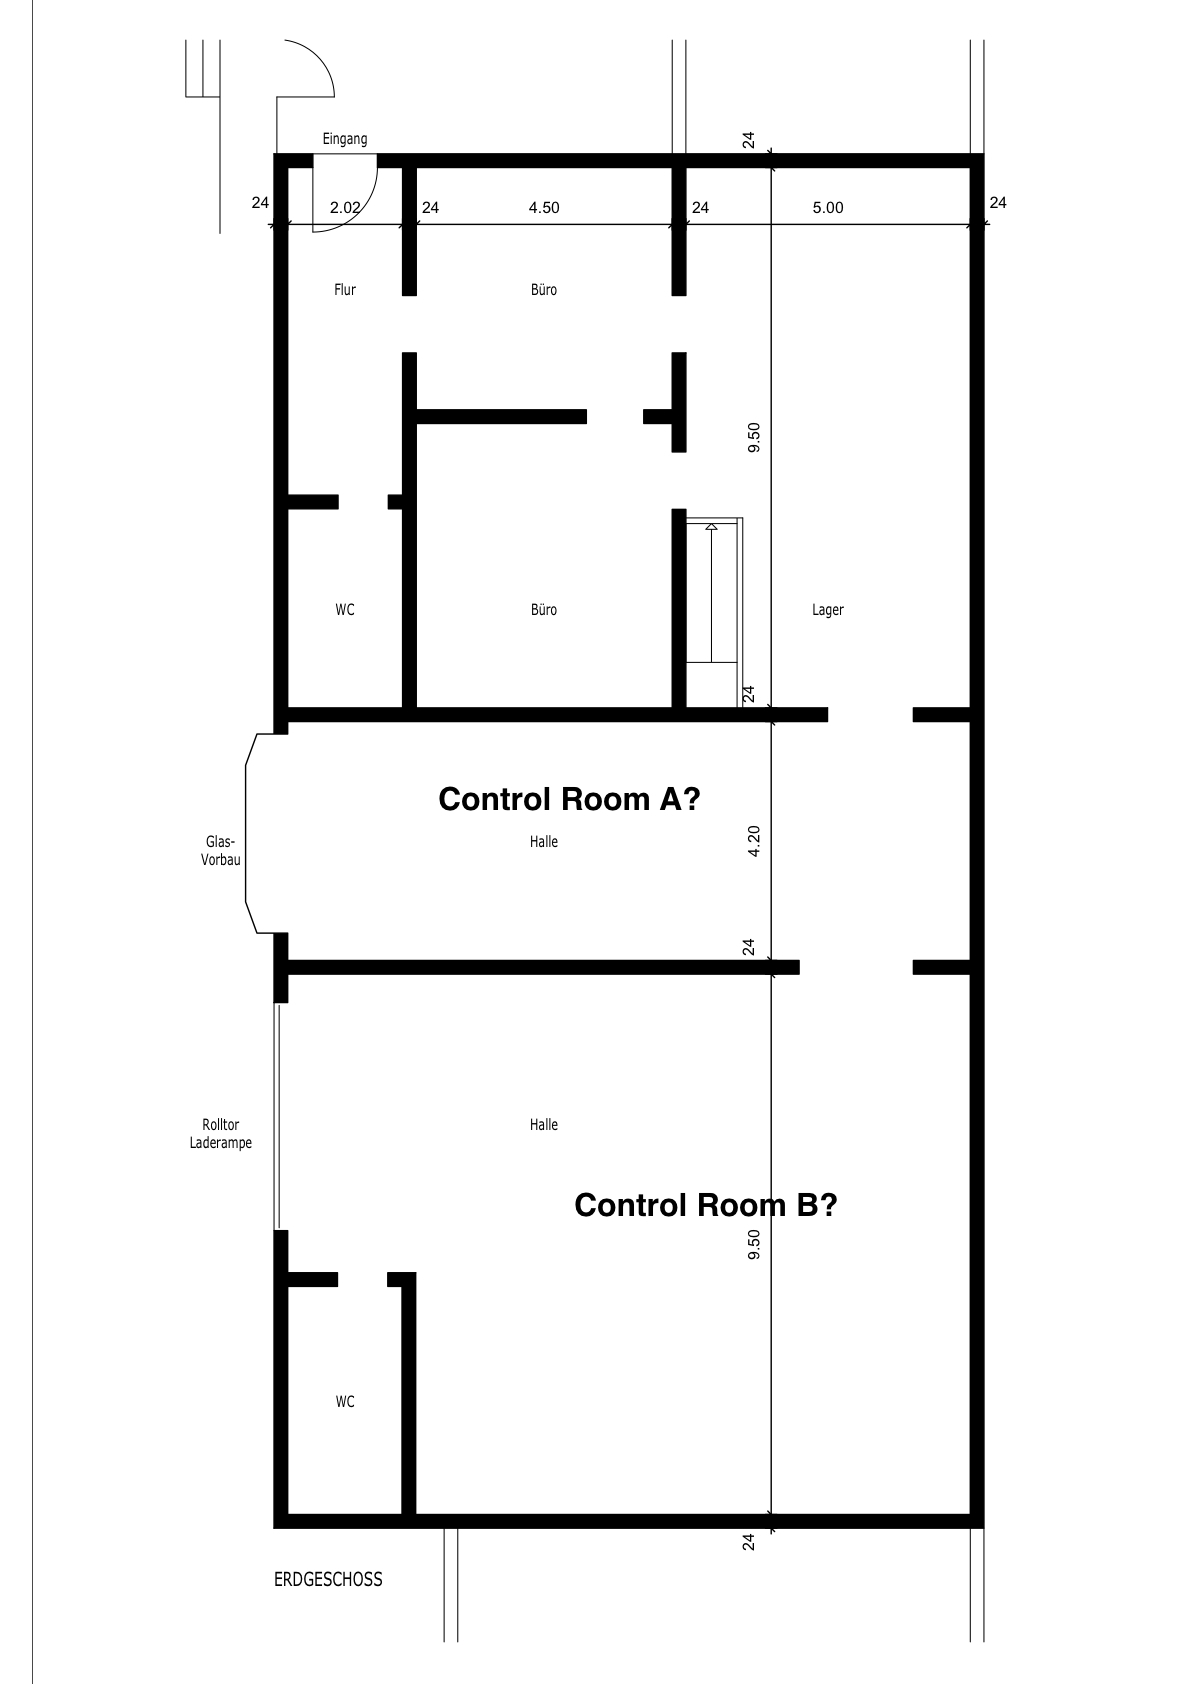 Image gallery studio layout for Room layout help